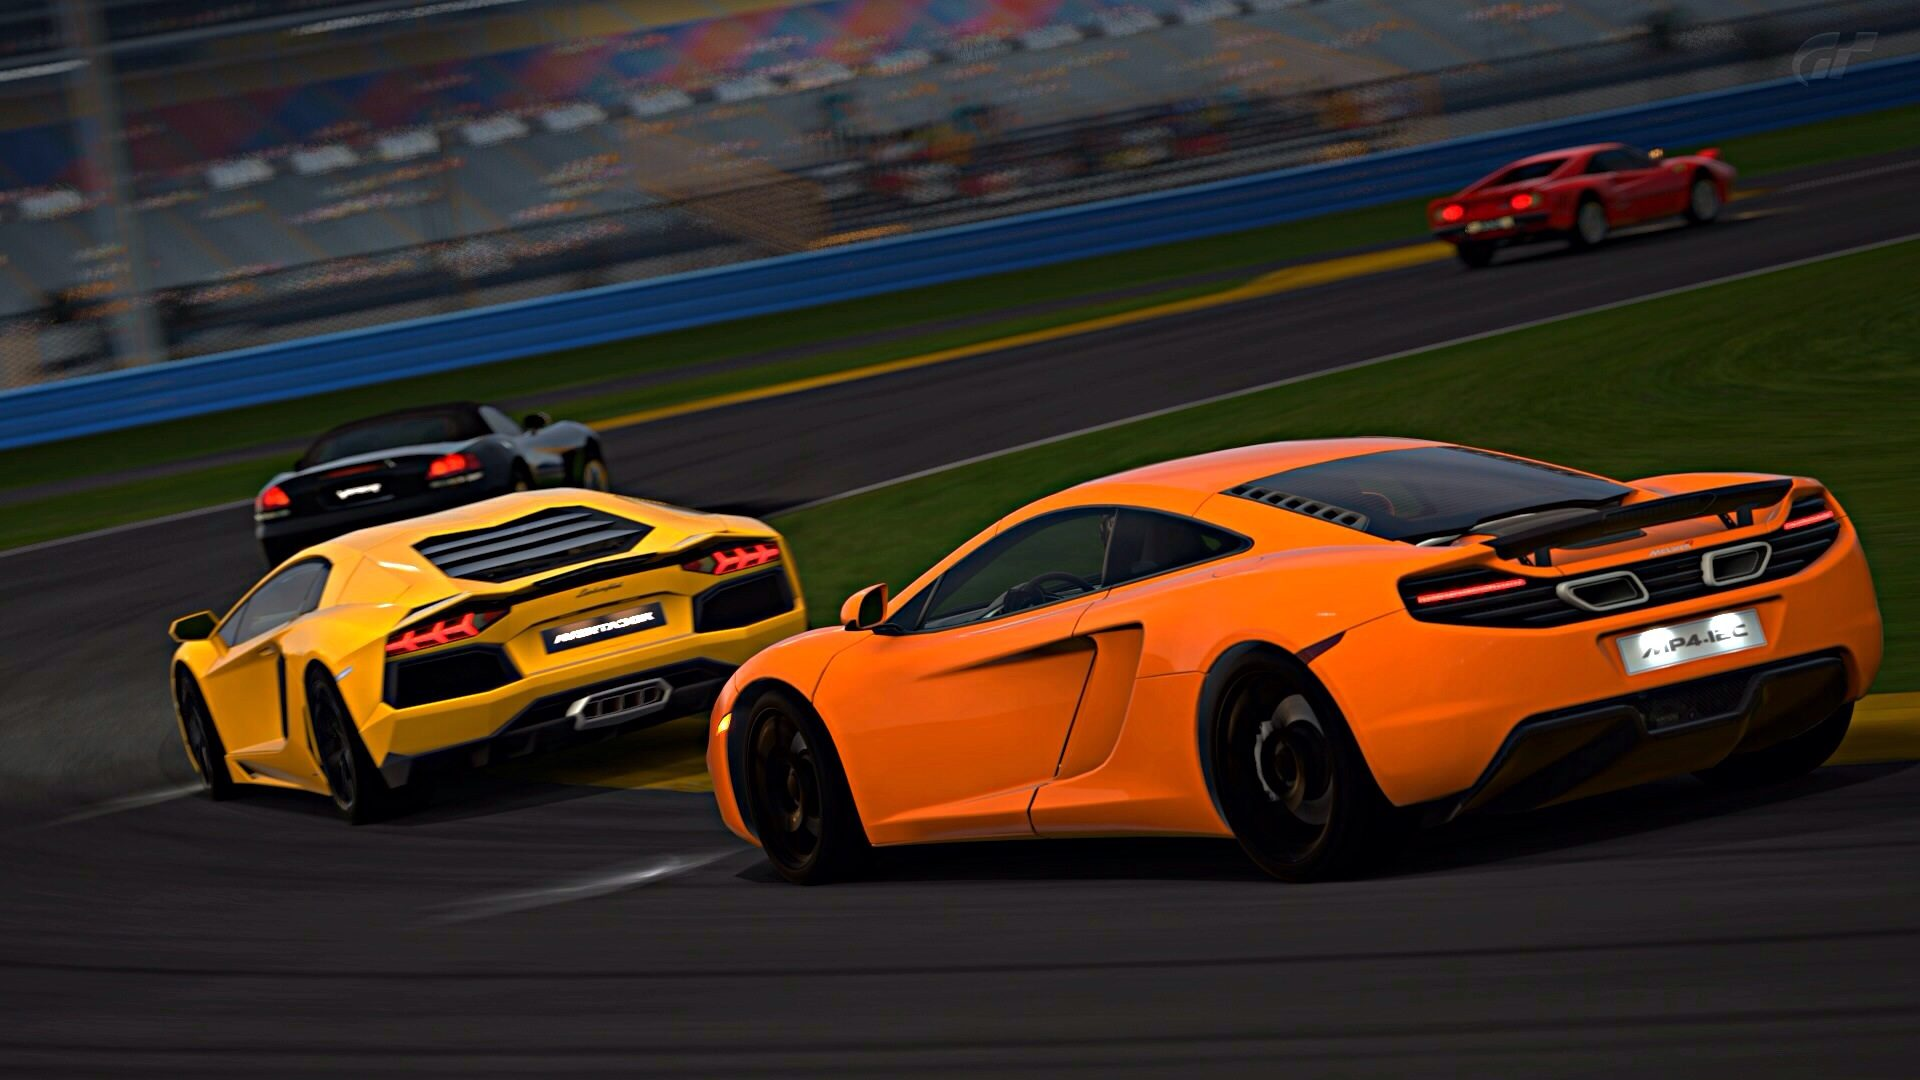 MP4-12C GTC Daytona Road Course (3).jpg